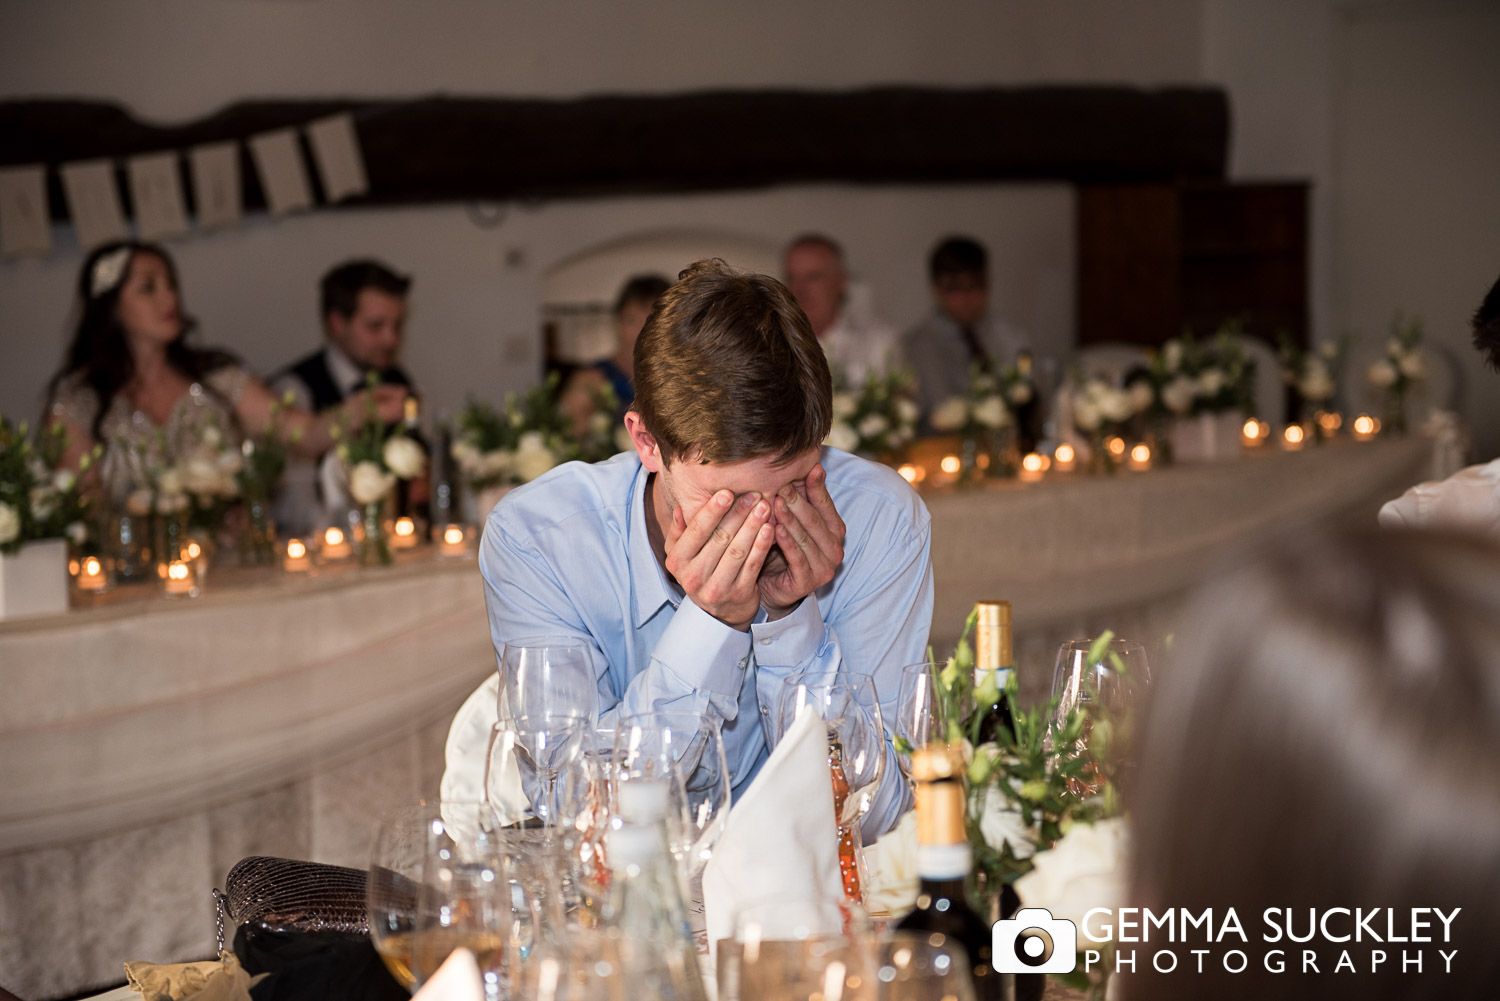 Wedding guest covering his face laughing during wedding sppeches